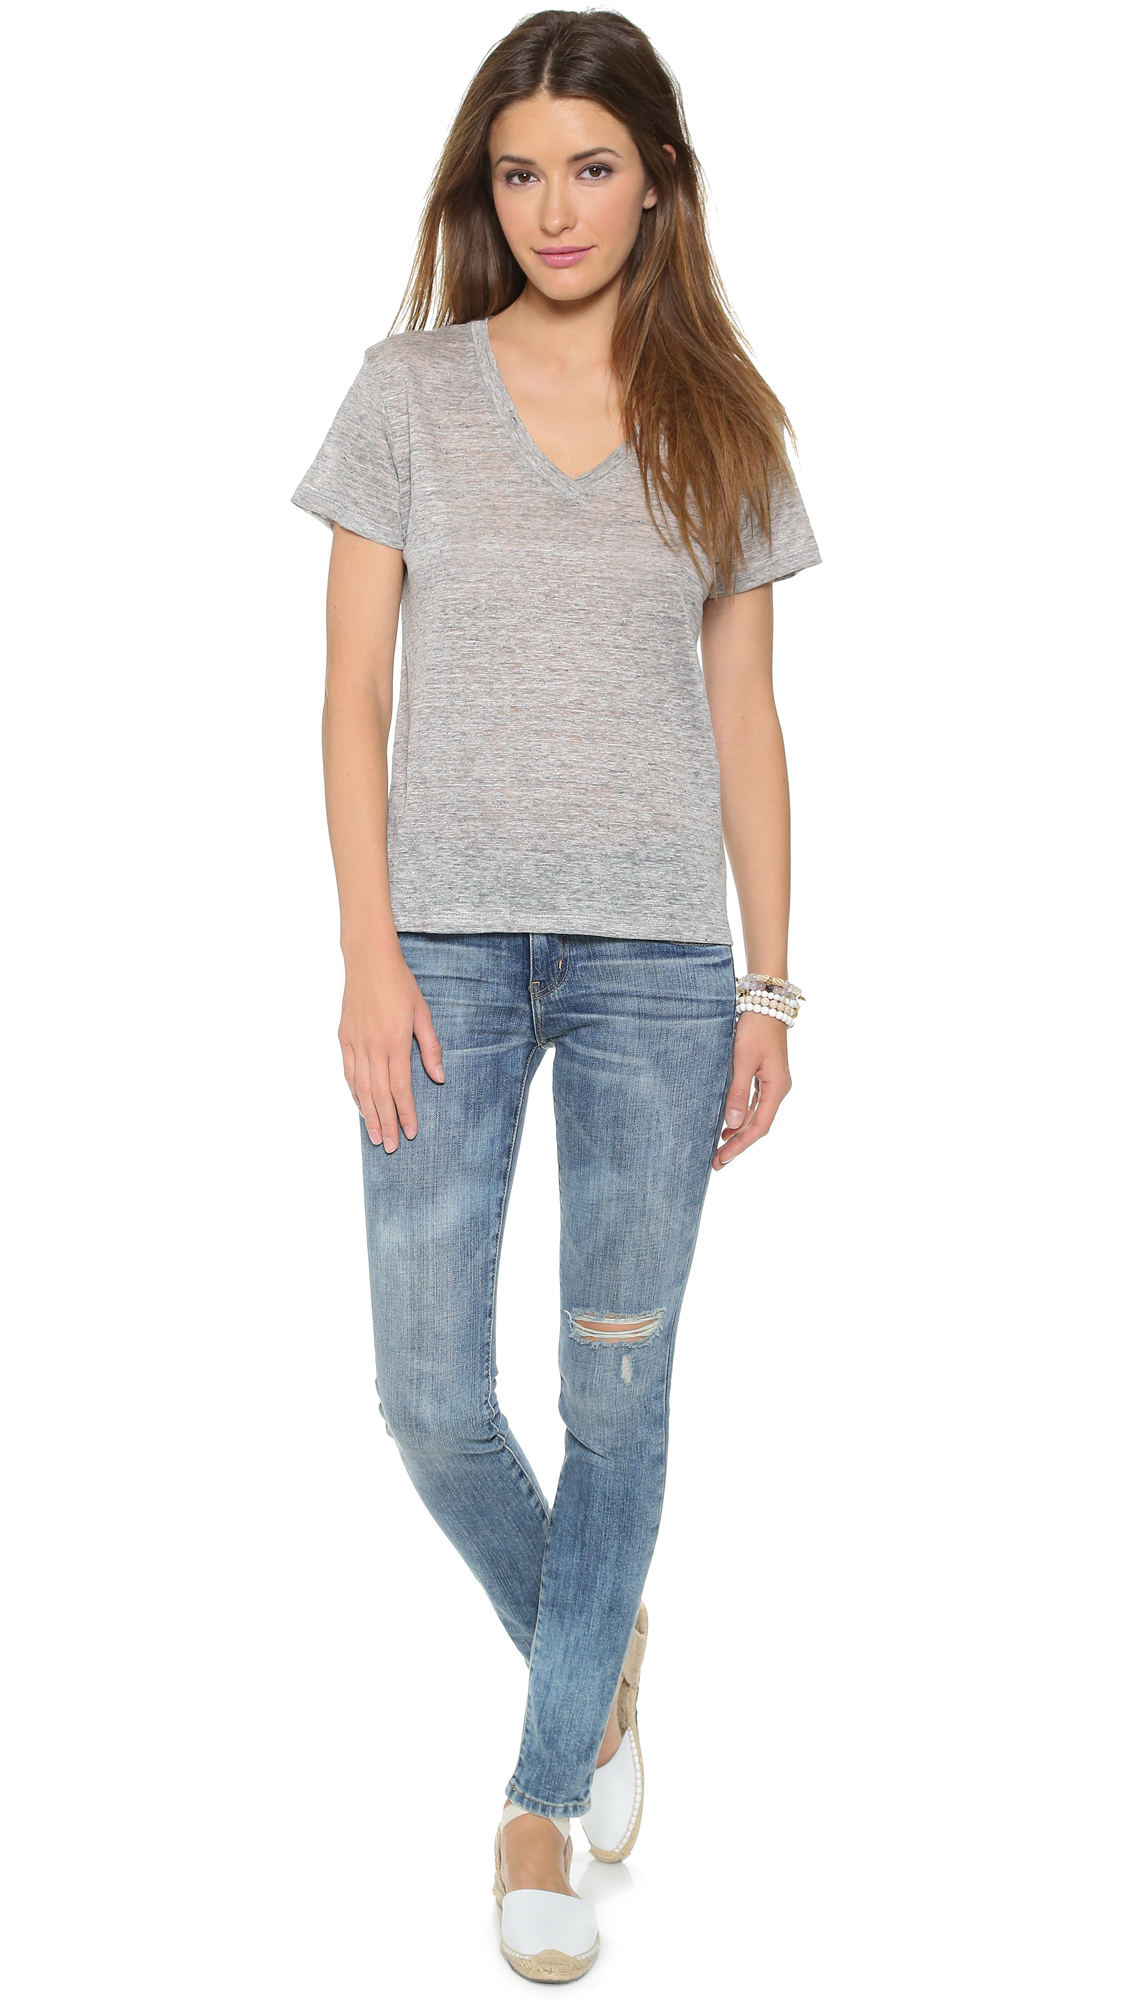 lyst the lady the sailor the boy v neck tee in gray. Black Bedroom Furniture Sets. Home Design Ideas